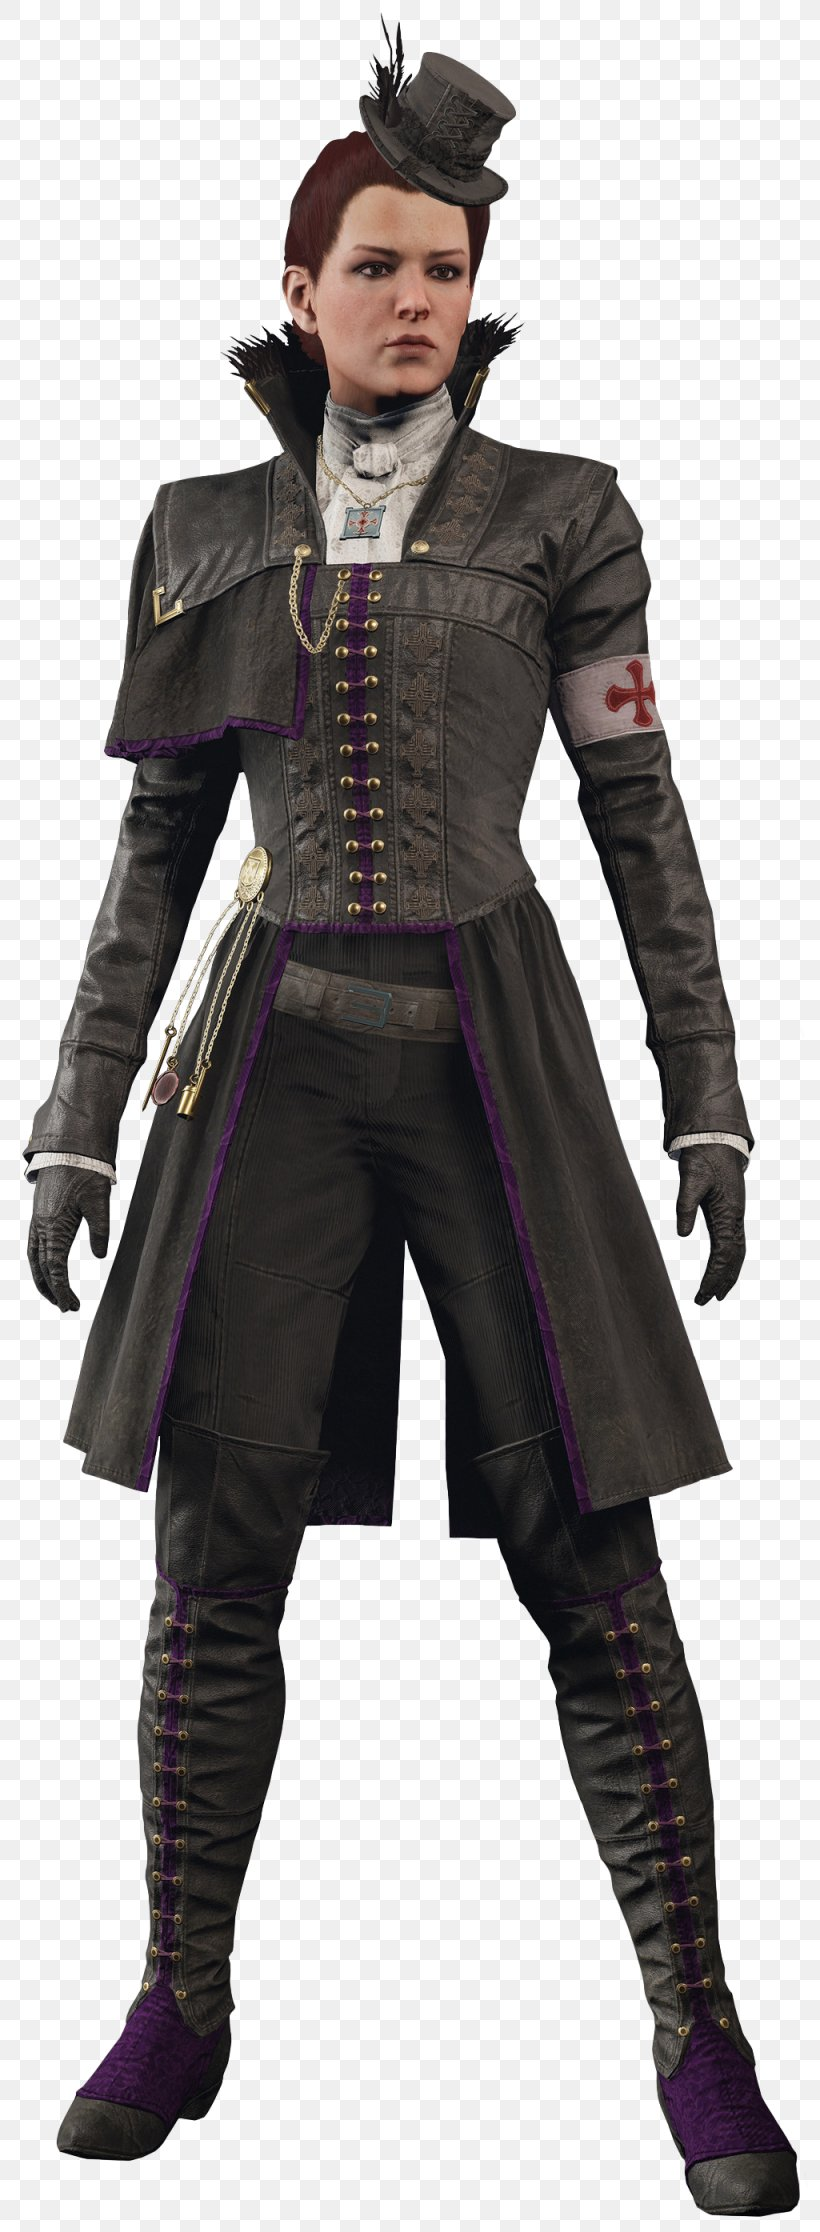 Assassin's Creed Syndicate Industrial Revolution Knights Templar Video Game, PNG, 1025x2790px, Assassin S Creed Syndicate, Assassin S Creed, Assassins, Costume, Costume Design Download Free